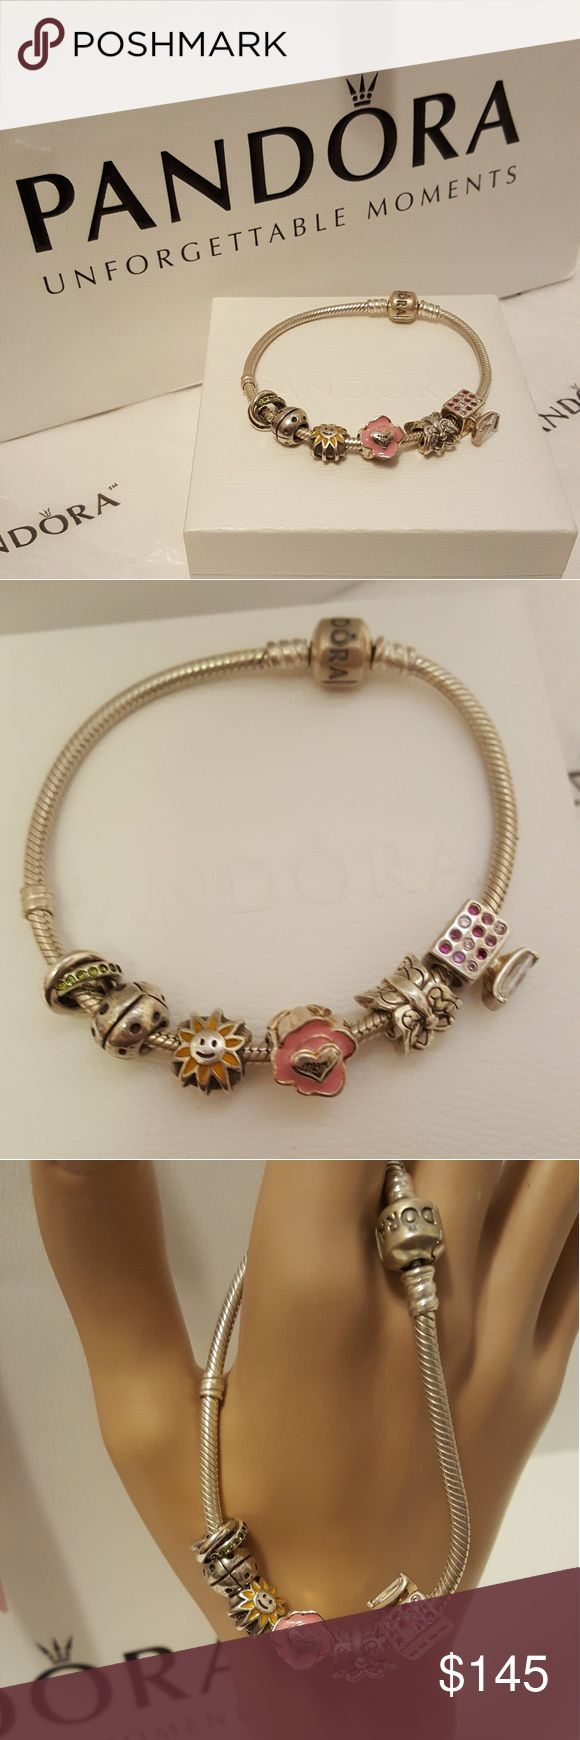 Authentic Pandora 7.75 bracelet with 6 charms. Pre loved bracelet dedicated to mom. Bracelet comes with mixed pandora and chamilia charms. All charms are marked 925 or S925. Comes with a Pandora bracelet box and bag. Pandora offers free cleanings for life on their products. I am open to trades. Looking for a Tory Burch bag. Pandora Jewelry Bracelets